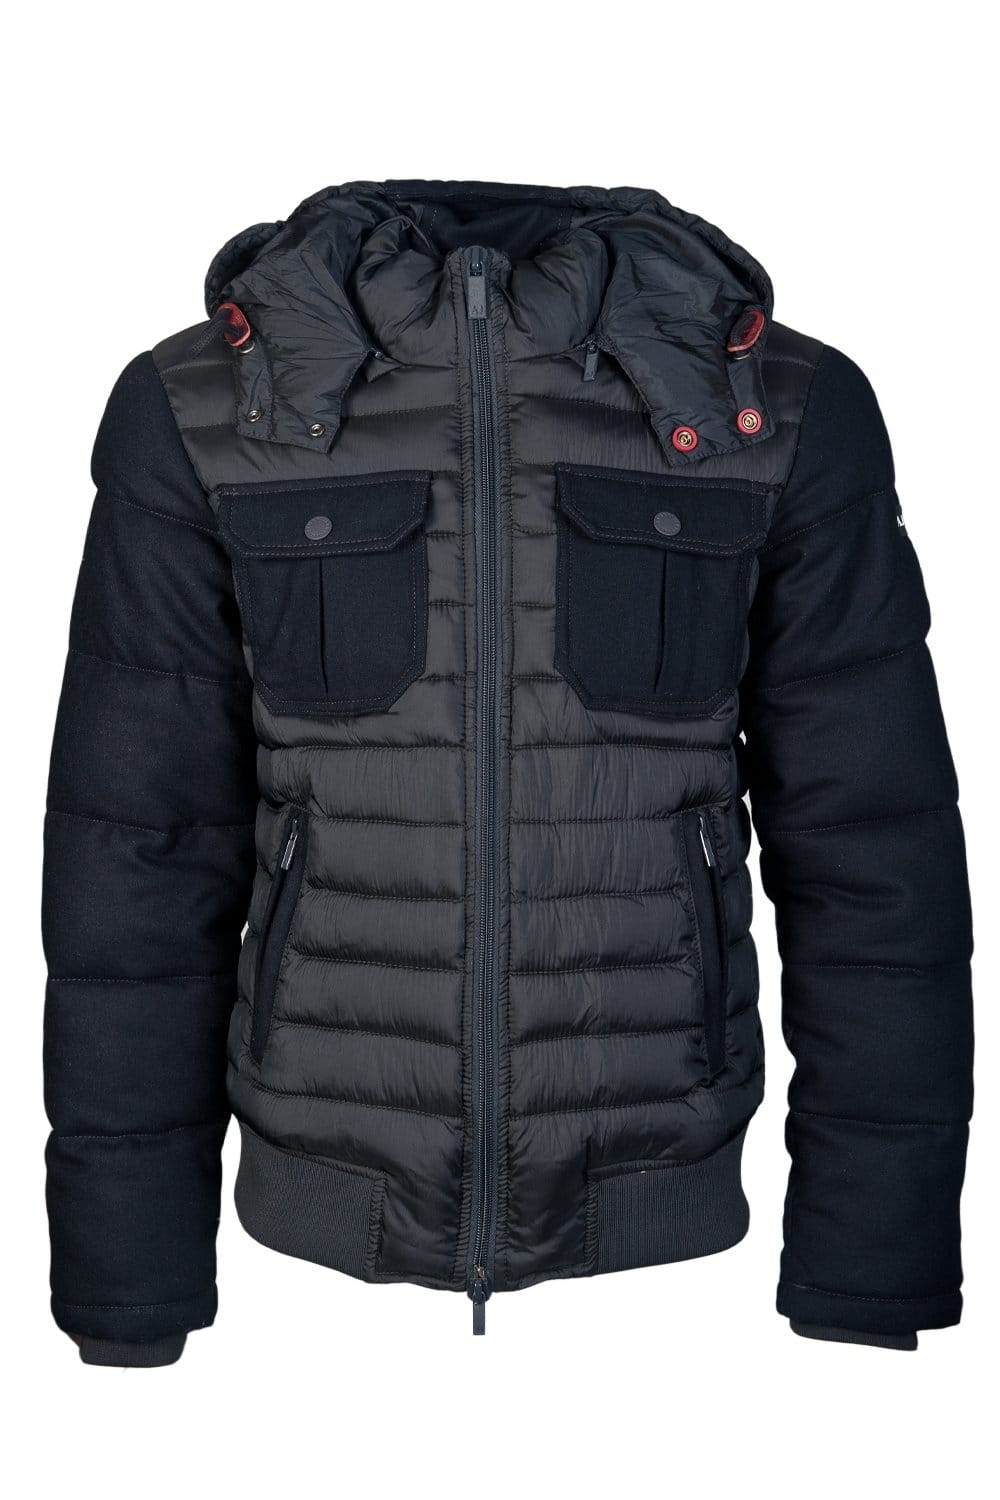 Wrap yourself in this navy faux fur hooded quilted padded puffer jacket for this season. UK next day delivery- order before 3pm.